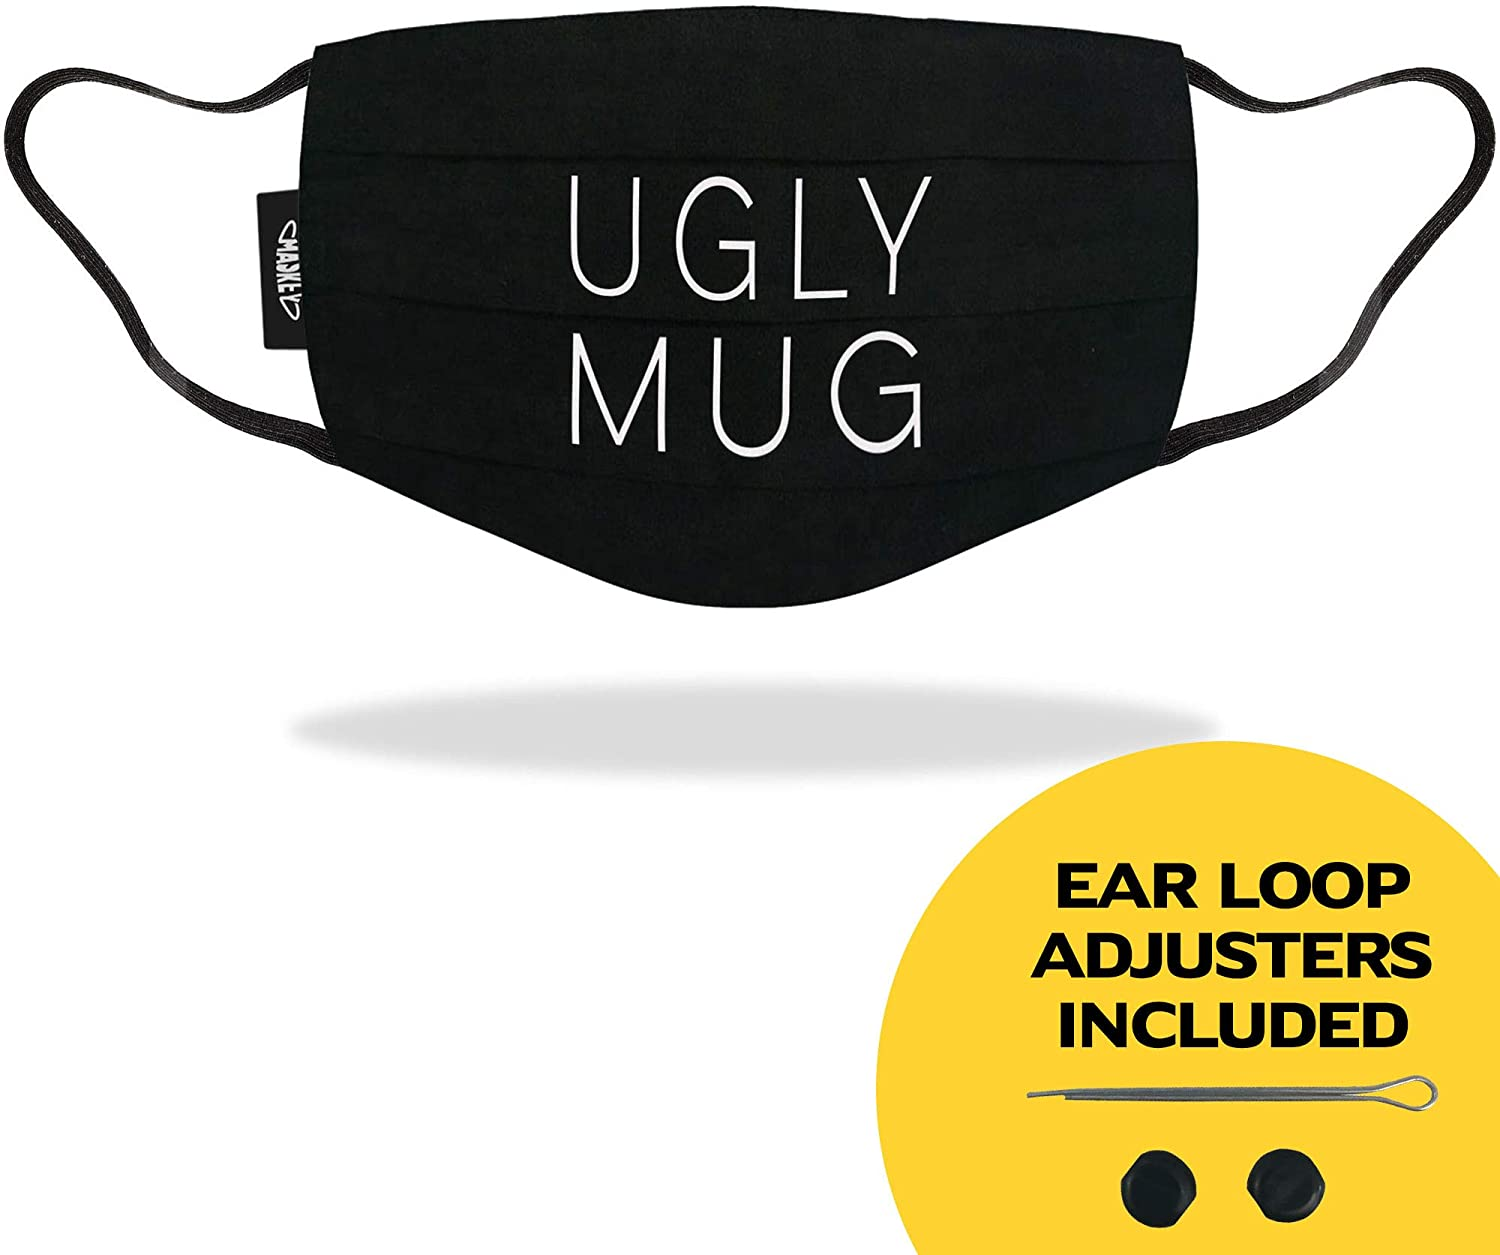 Ugly Mug - Funny Face Mask - LIMITED EDITION